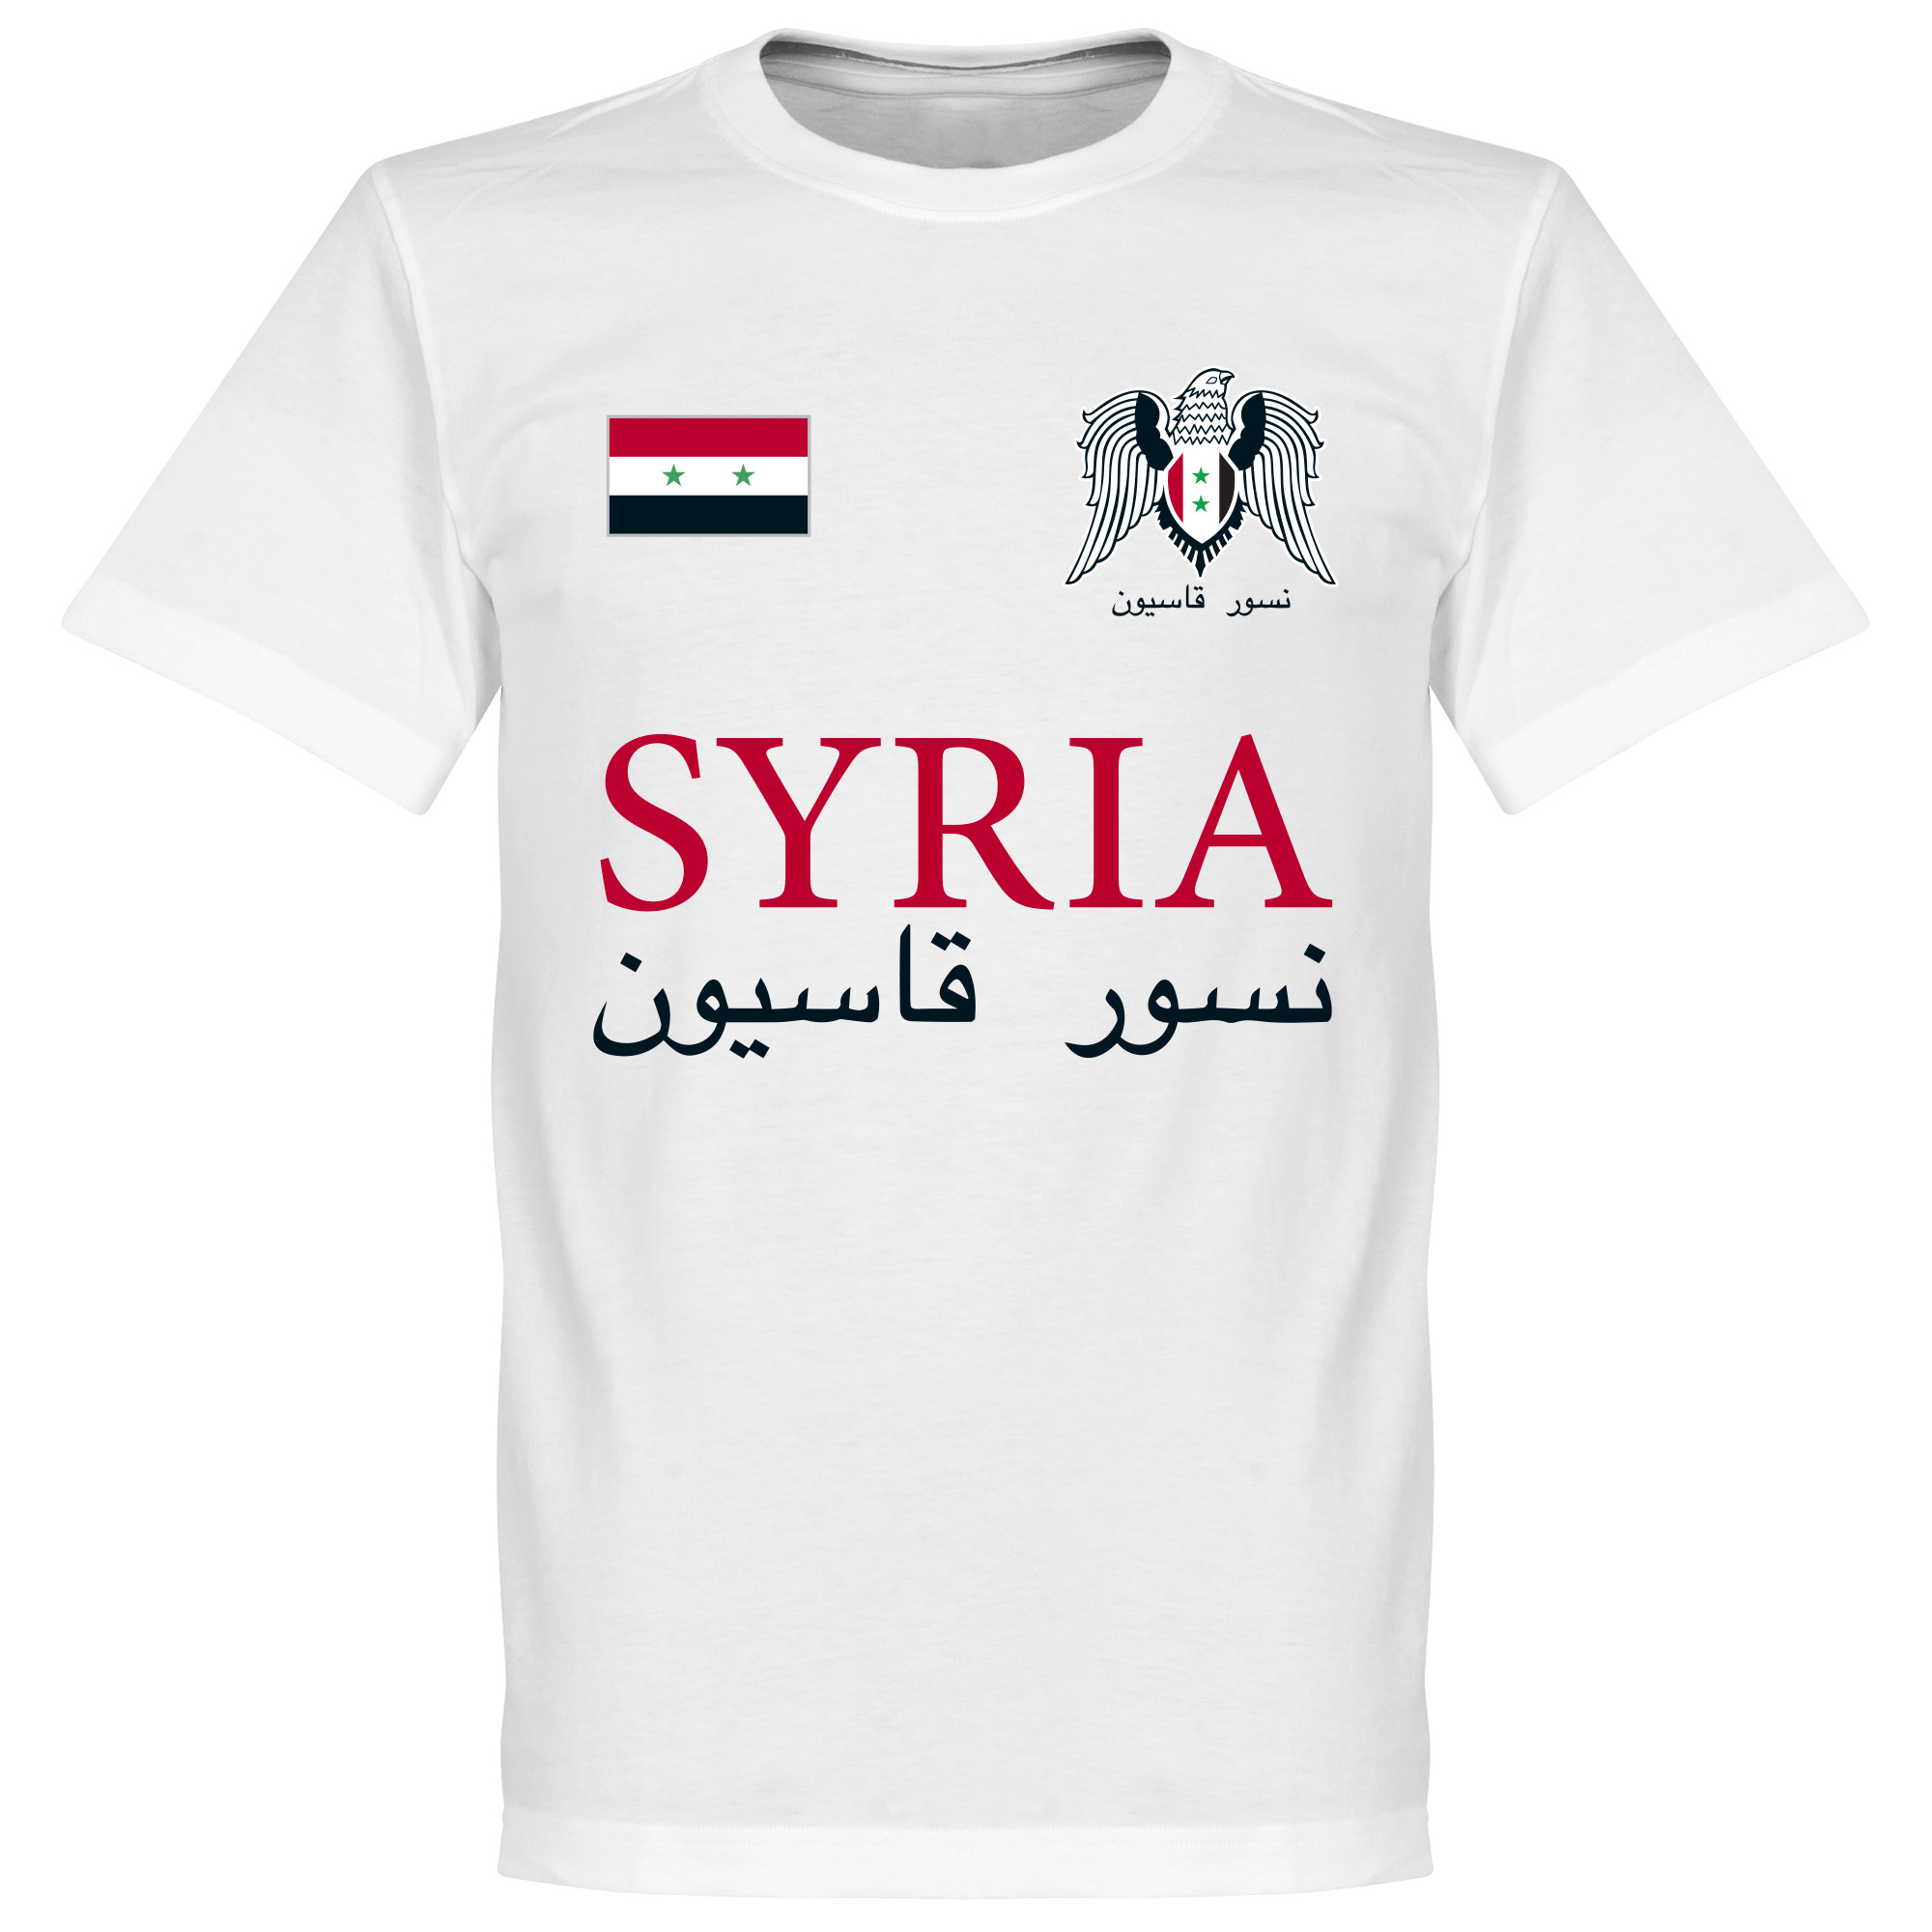 Syria National Tee - White - L